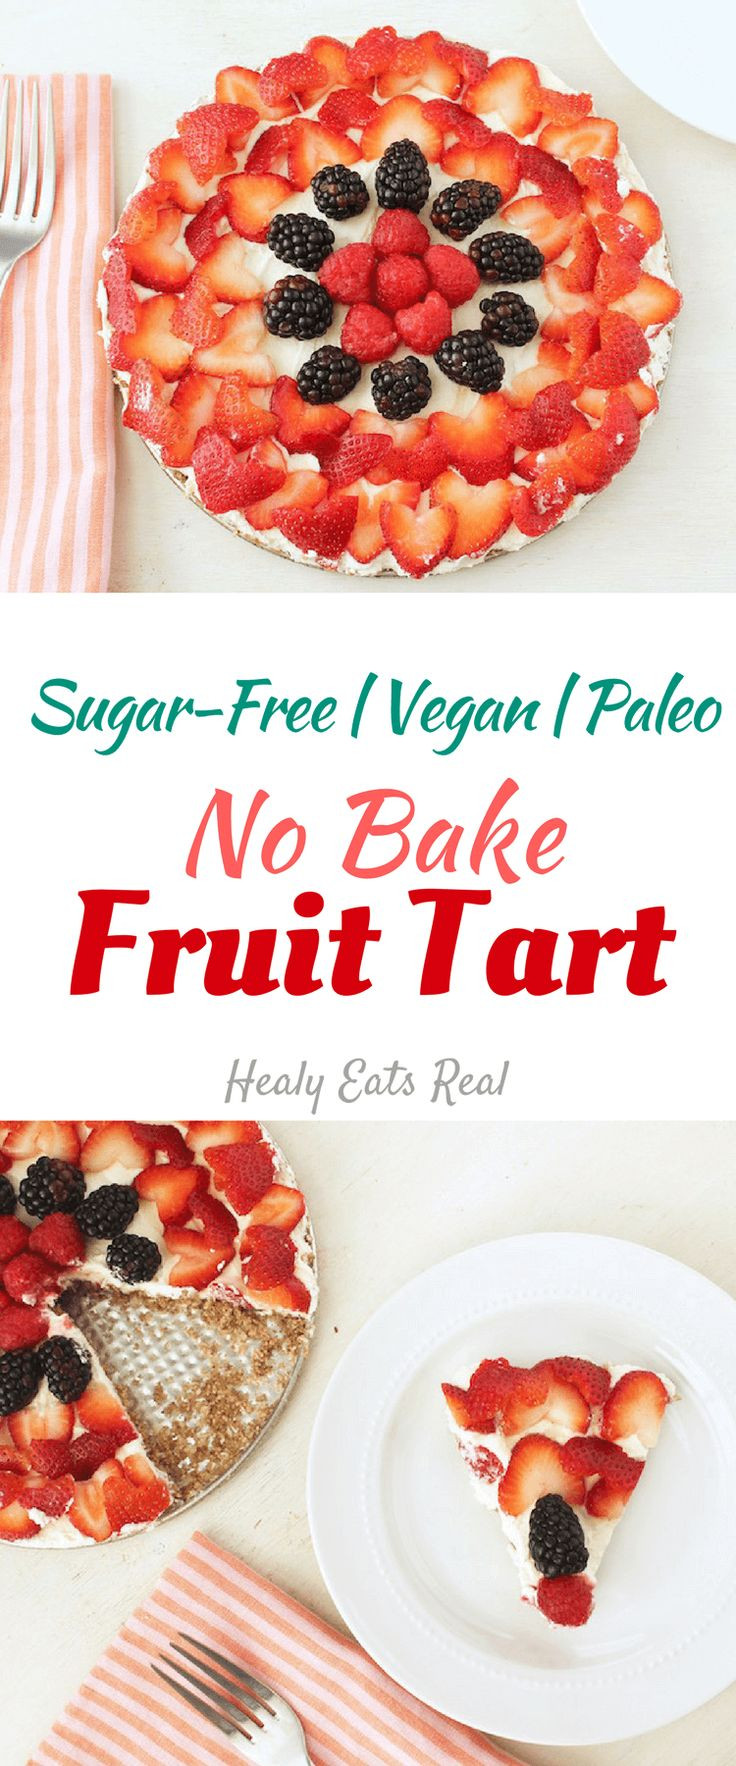 Healthy Fruit Desserts No Sugar  25 Best Ideas about Fruit Tart Recipes on Pinterest